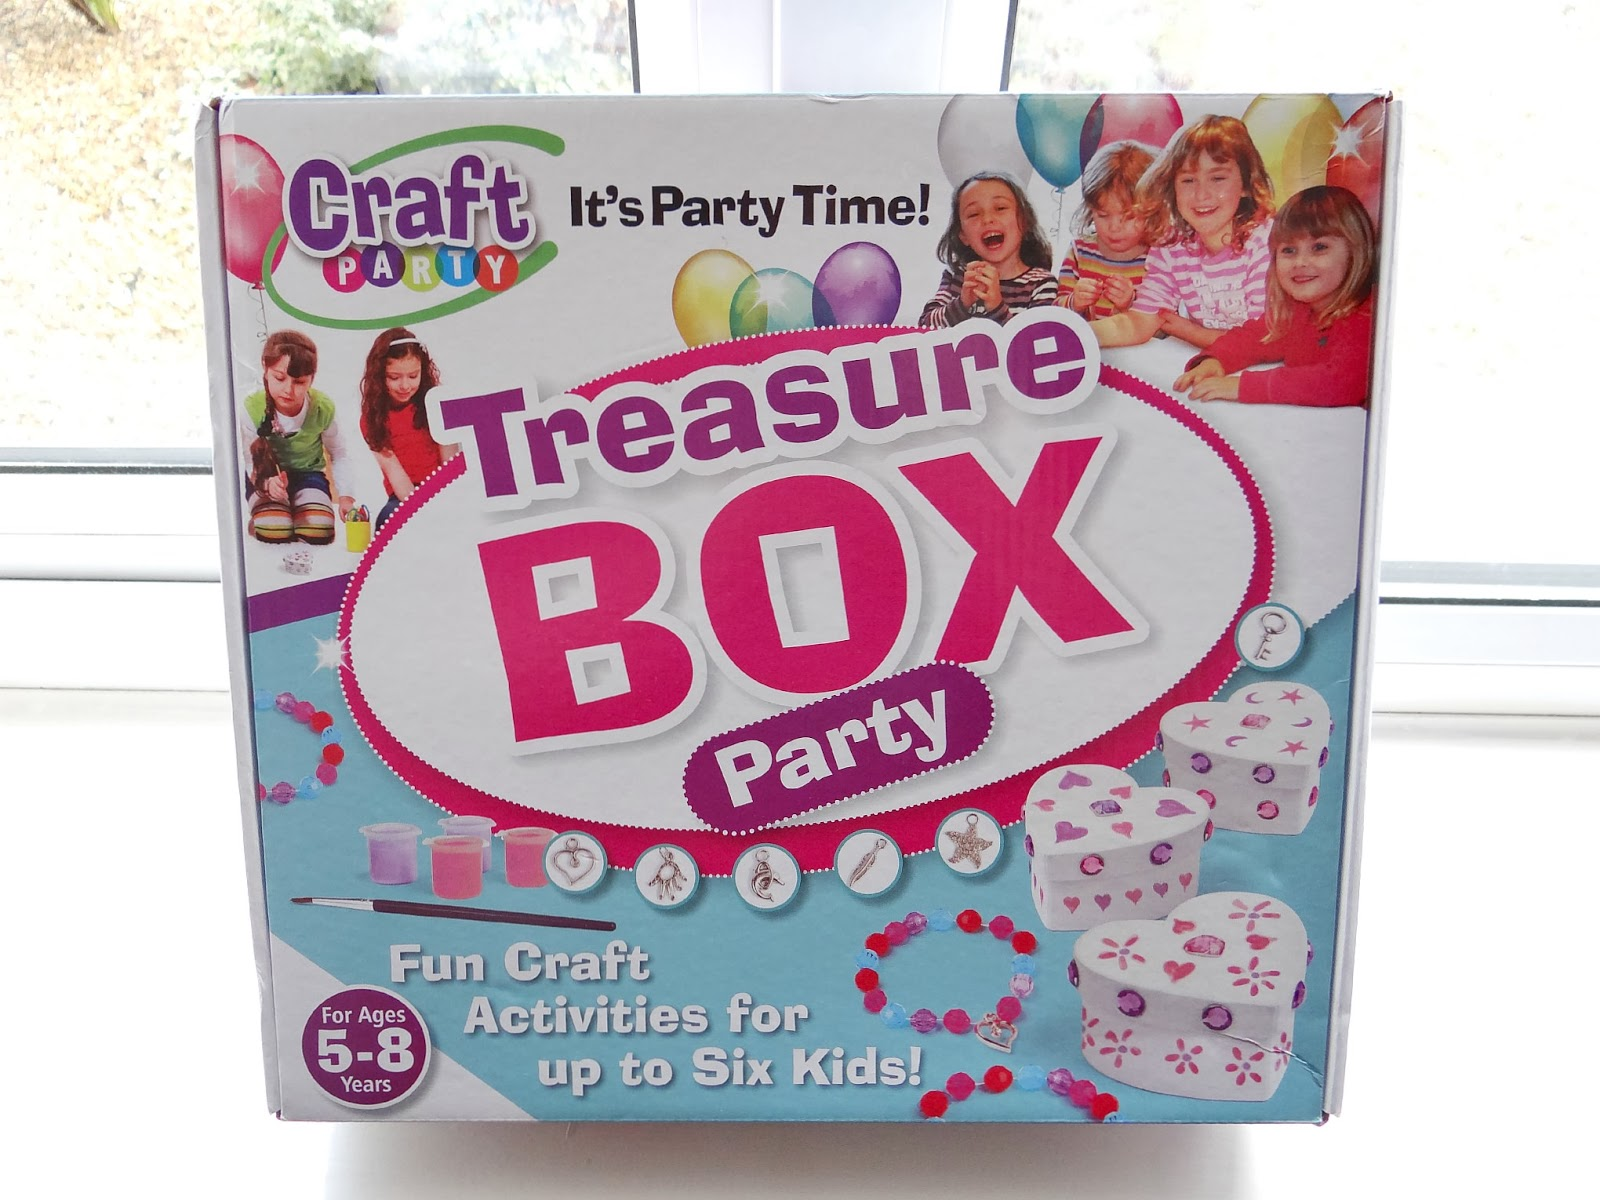 Interplay Treasure Box Craft Party, What to do on Play Dates, craft party